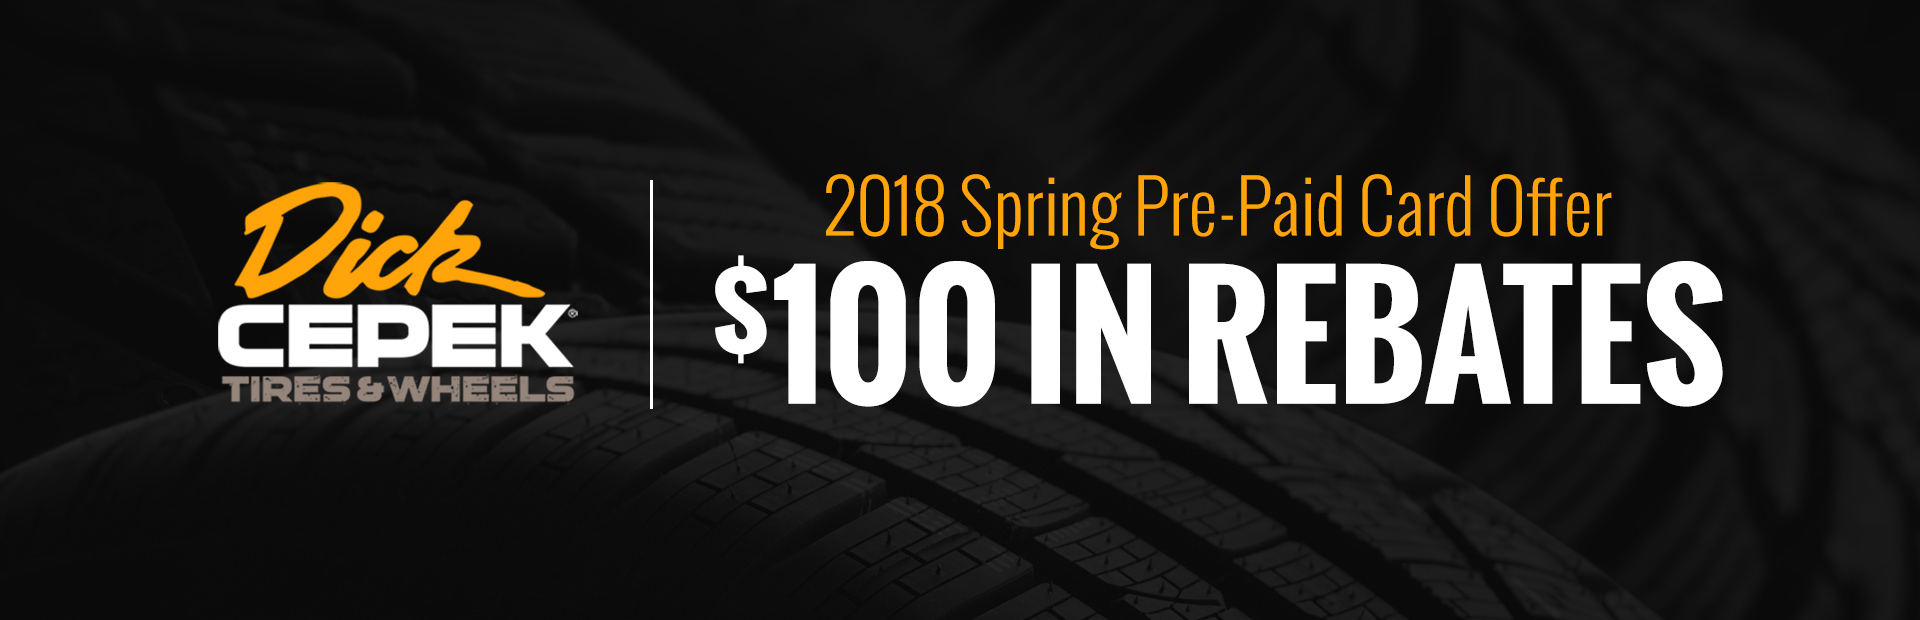 2018 Spring Pre-Paid Card Offer